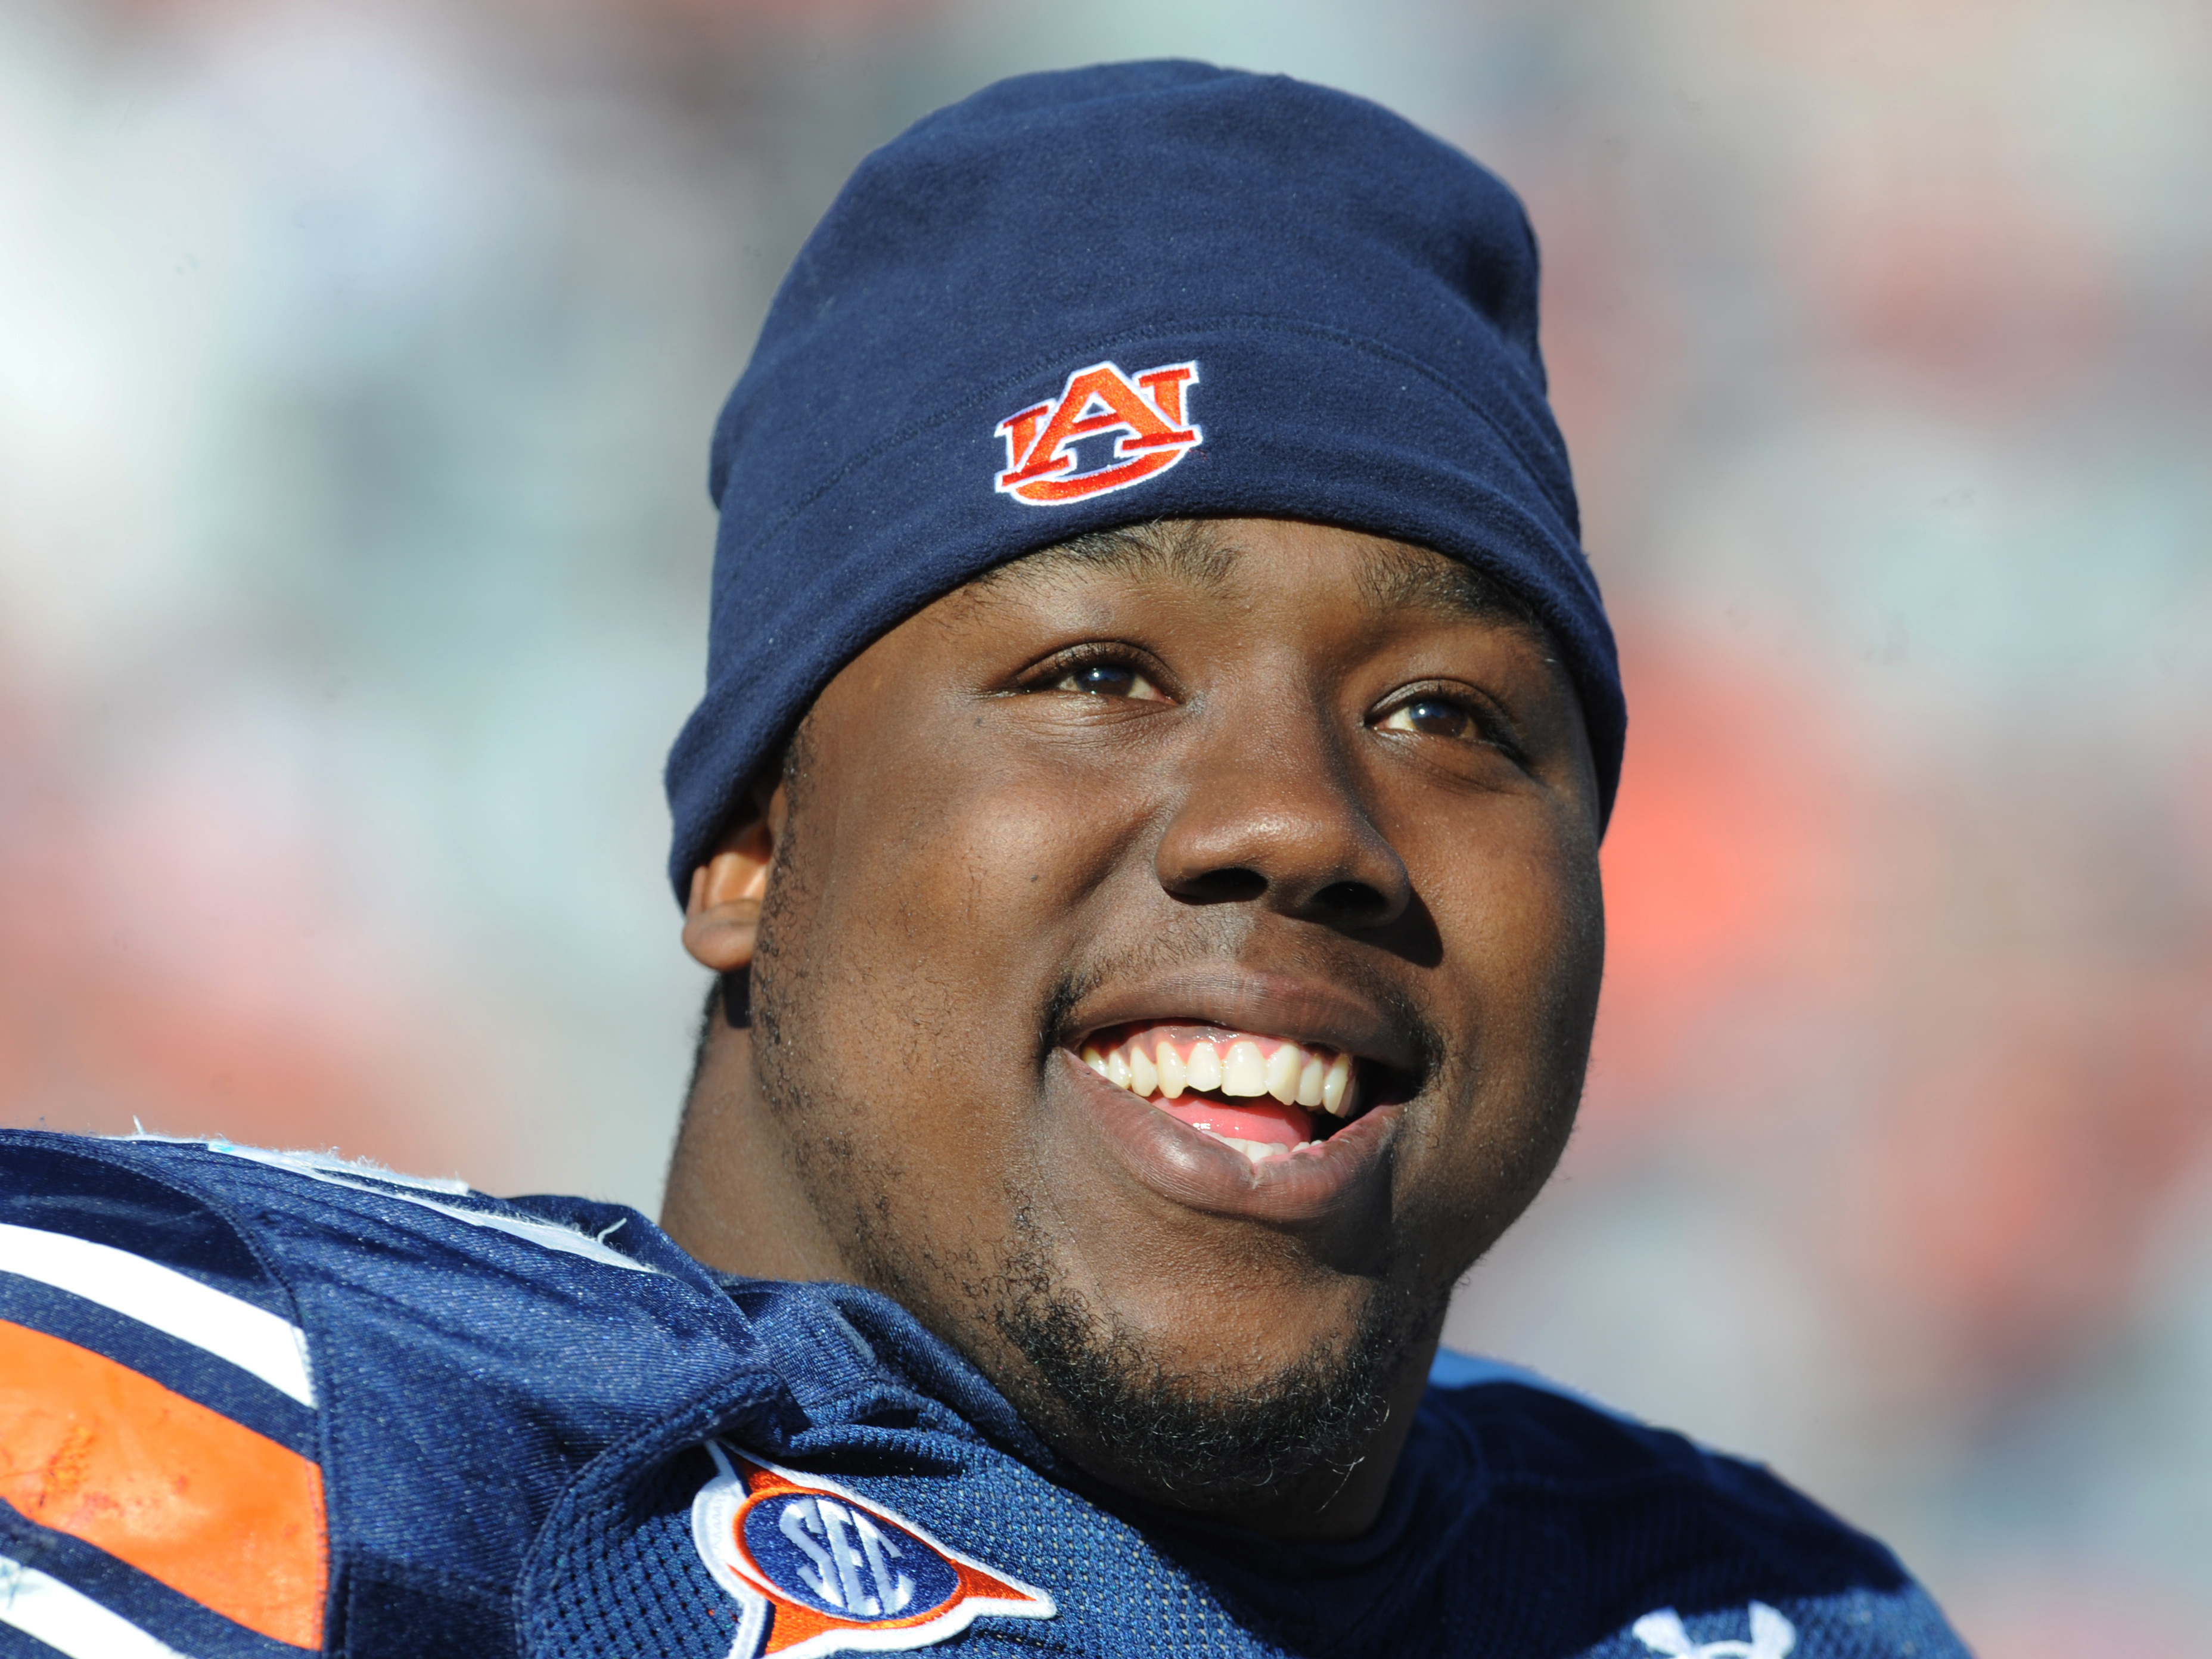 AUBURN, AL - NOVEMBER 06:  Defensive tackle Nick Fairley #90 of the Auburn Tigers watches play against the Chattanooga Mocs November 6, 2010 at Jordan-Hare Stadium in Auburn, Alabama.  (Photo by Al Messerschmidt/Getty Images)